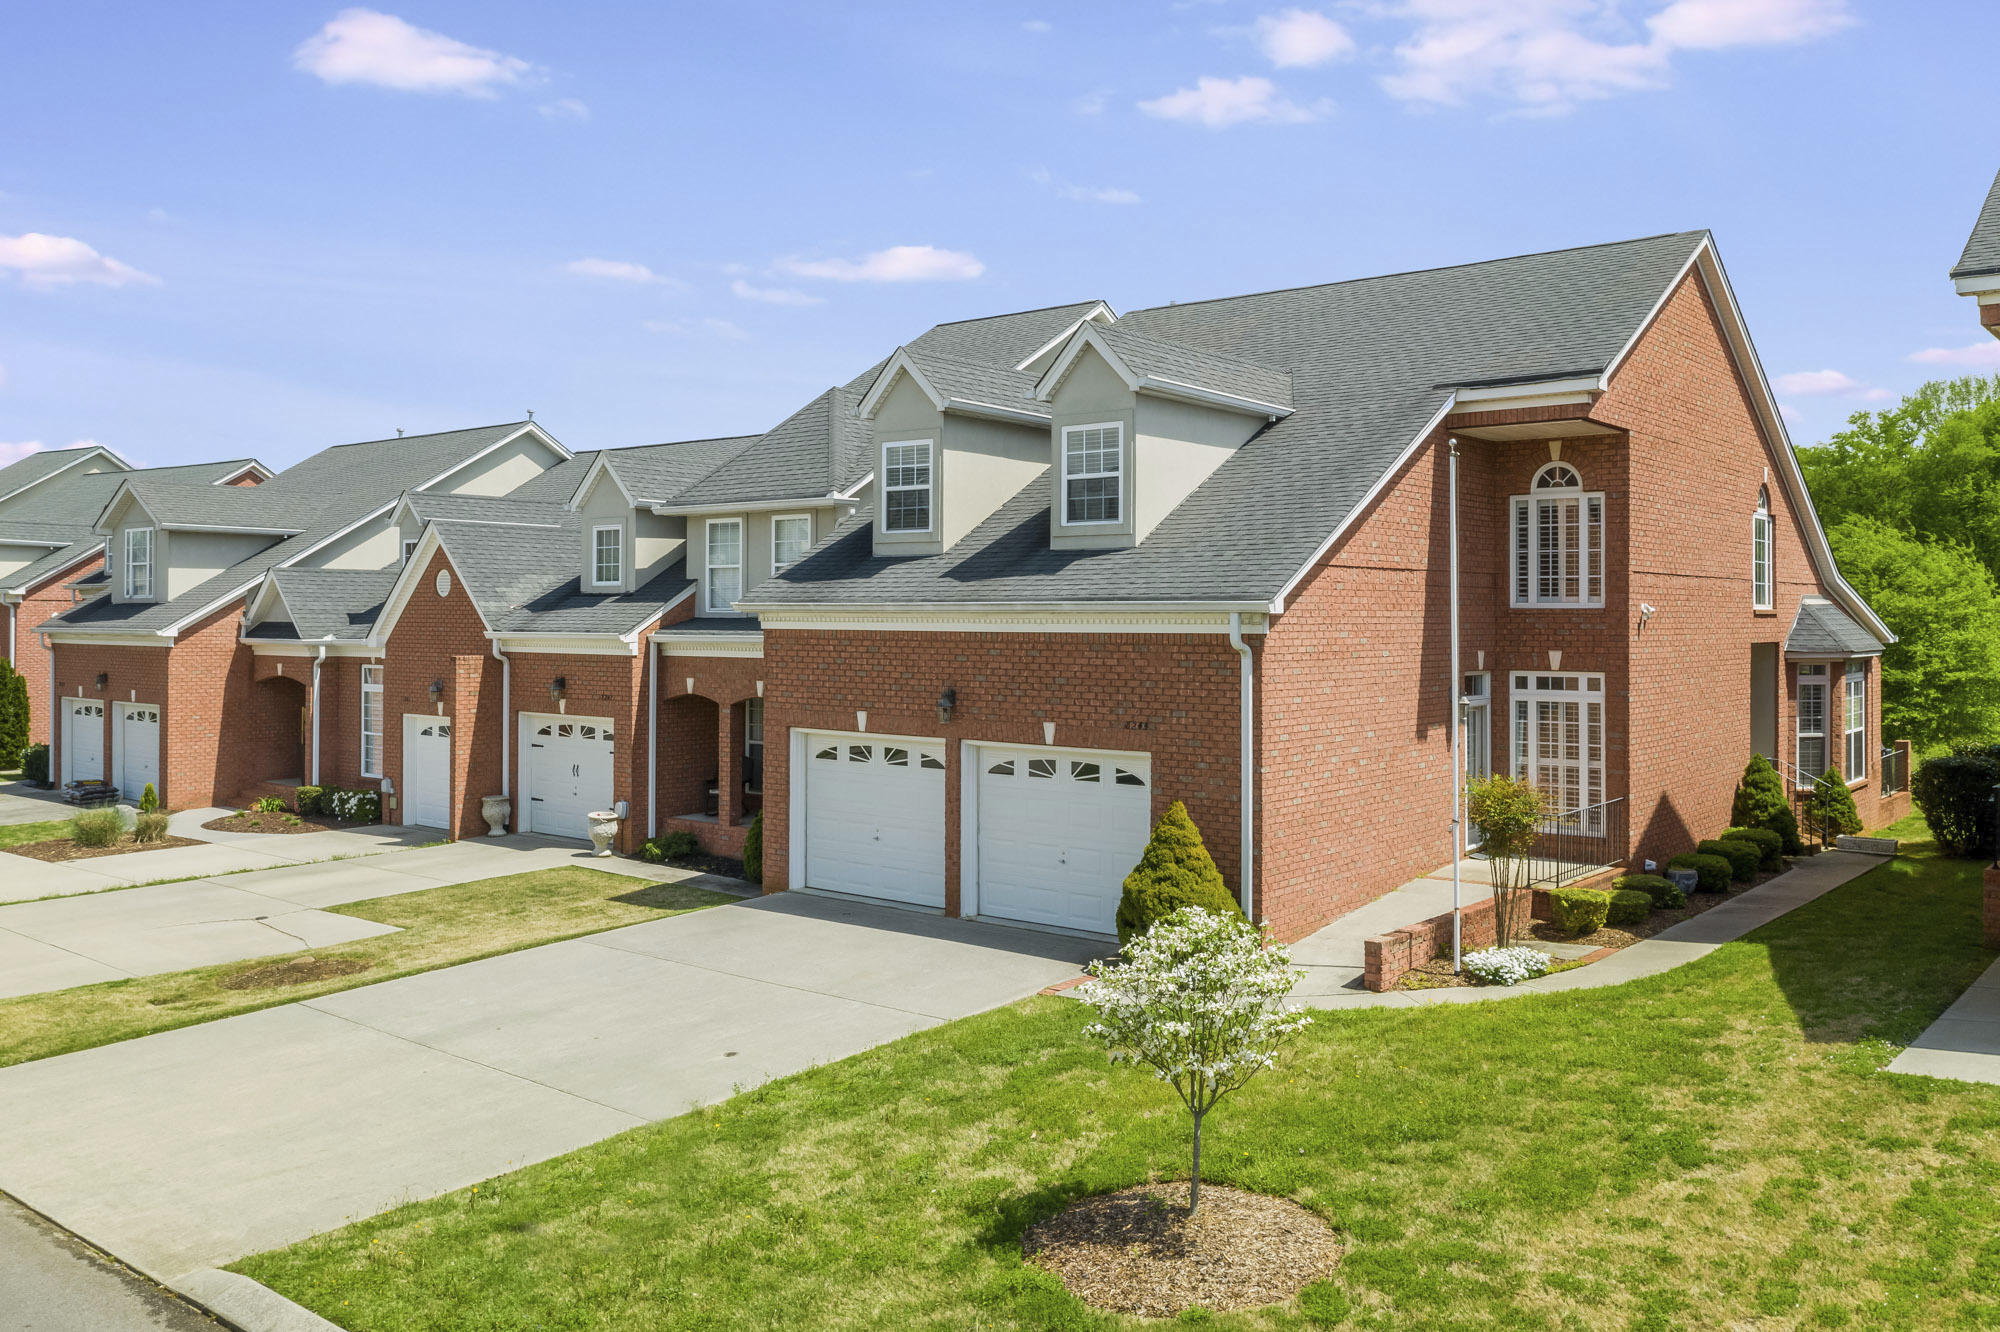 8245 Double Eagle Ct, Ooltewah, TN 37363